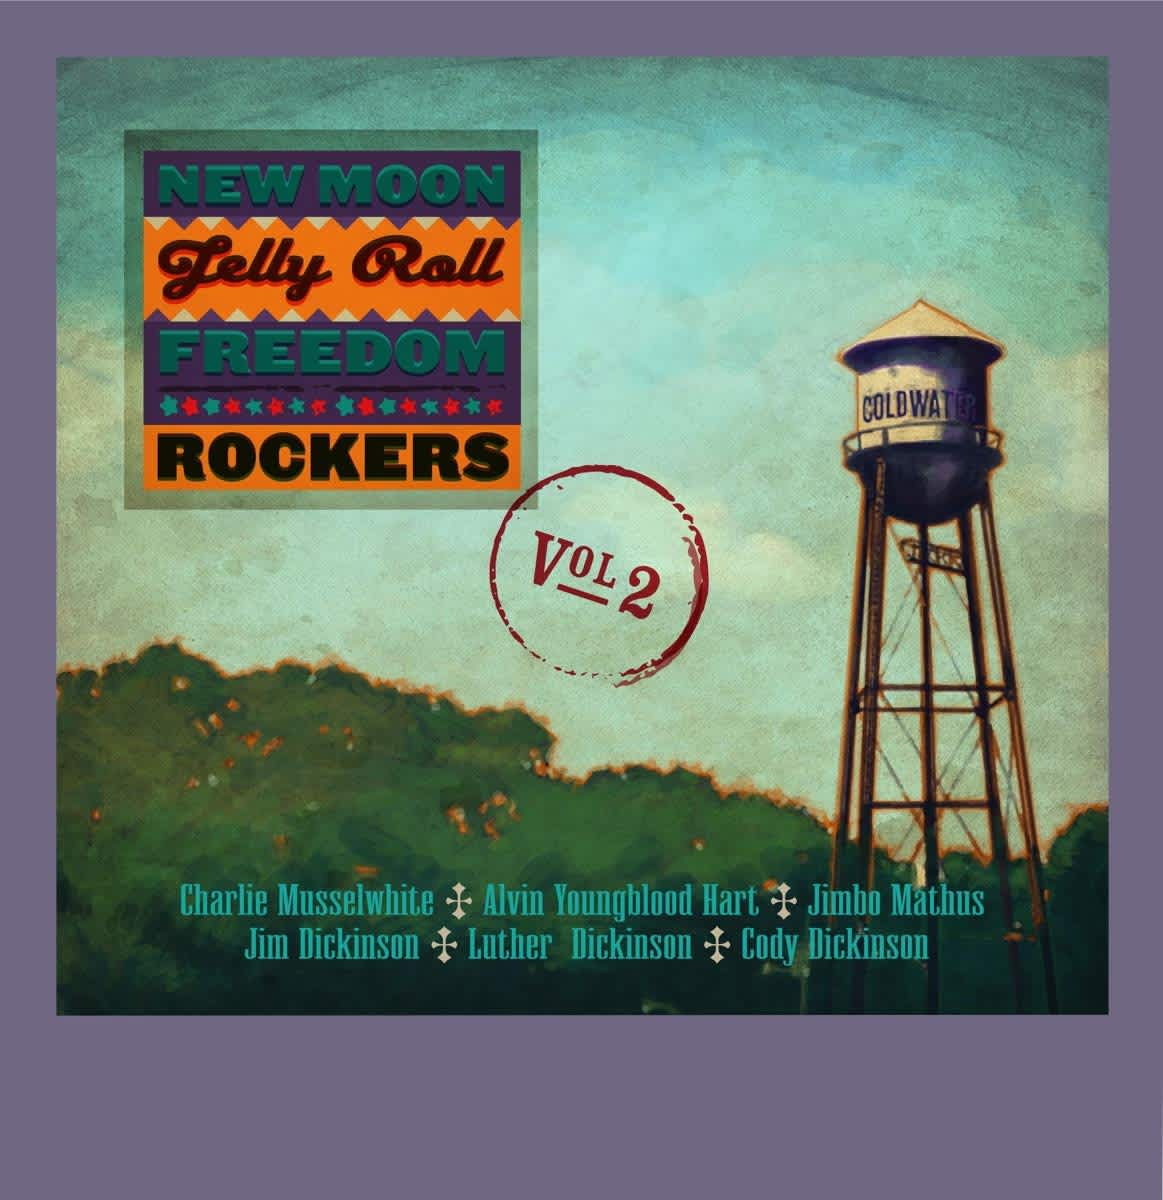 New Moon Jelly Roll Freedom Rockers Vol.1, feat. Charlie Musselwhite, Alvin Youngblood Hart, Luther & Cody & Jim Dickinson, Jimbo Mathus